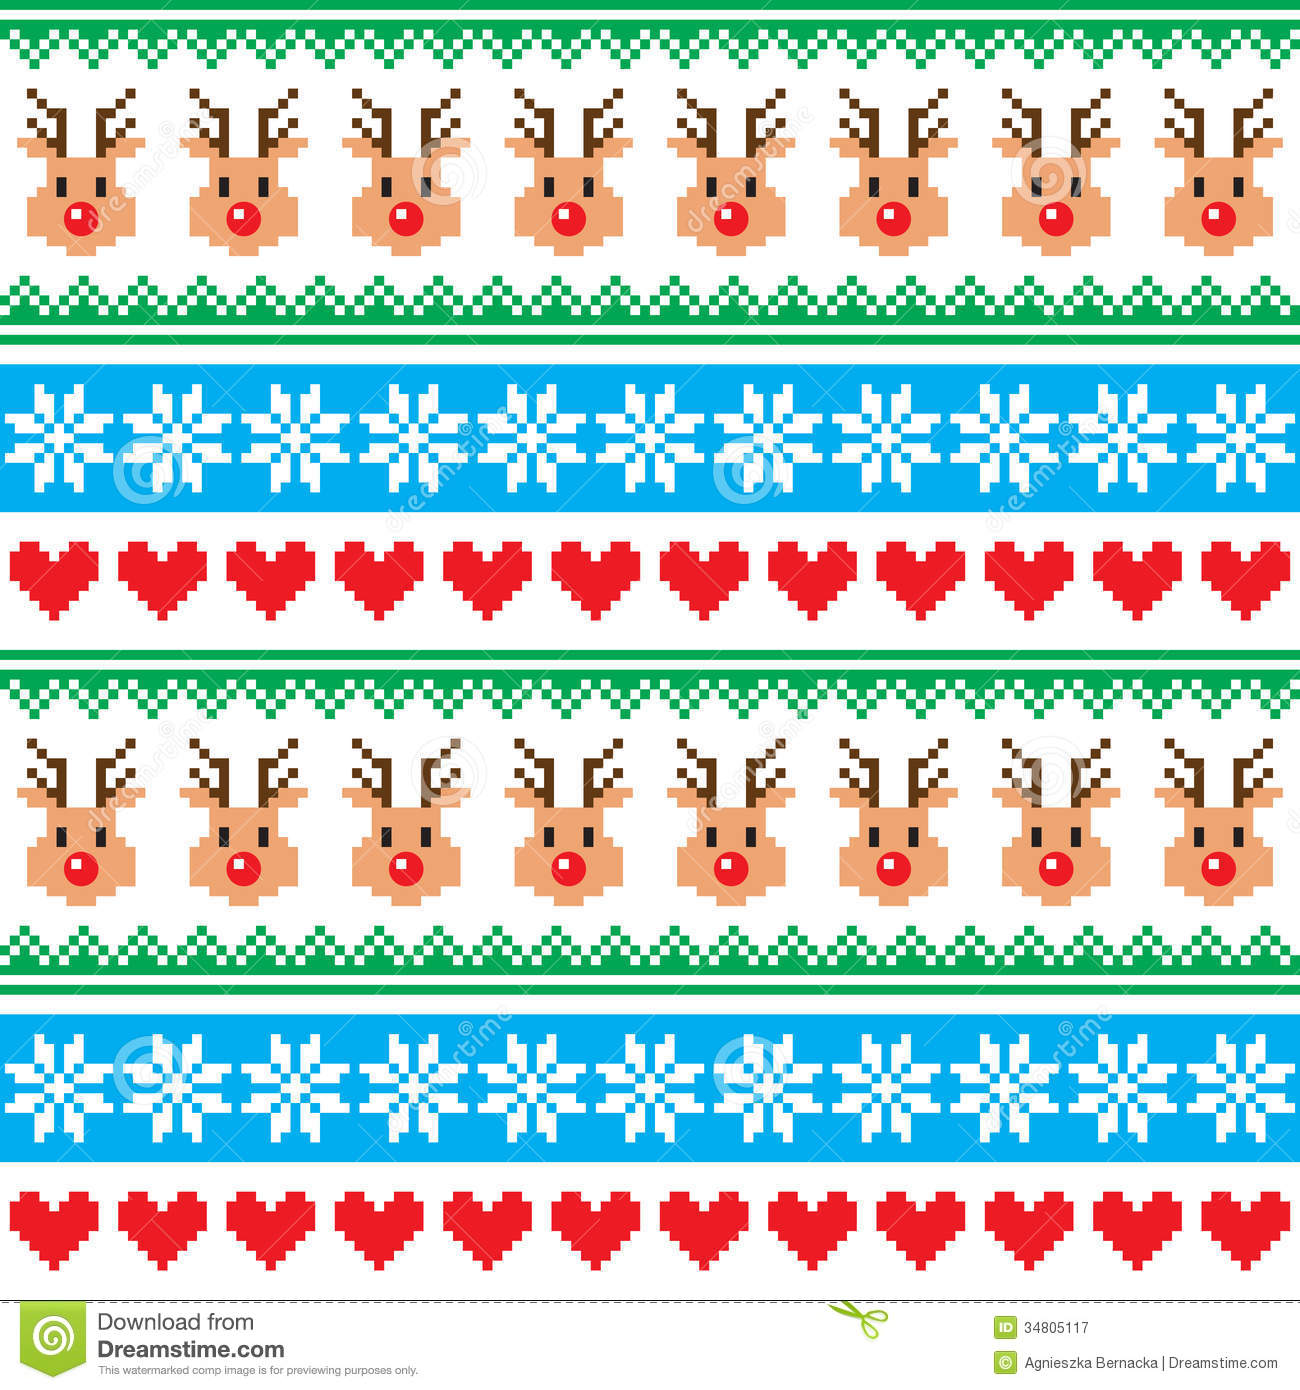 Knitting Pattern Christmas Jumper Reindeer : Christmas Pattern With Reindeer Pattern - Scandynavian Sweater Style Royalty ...